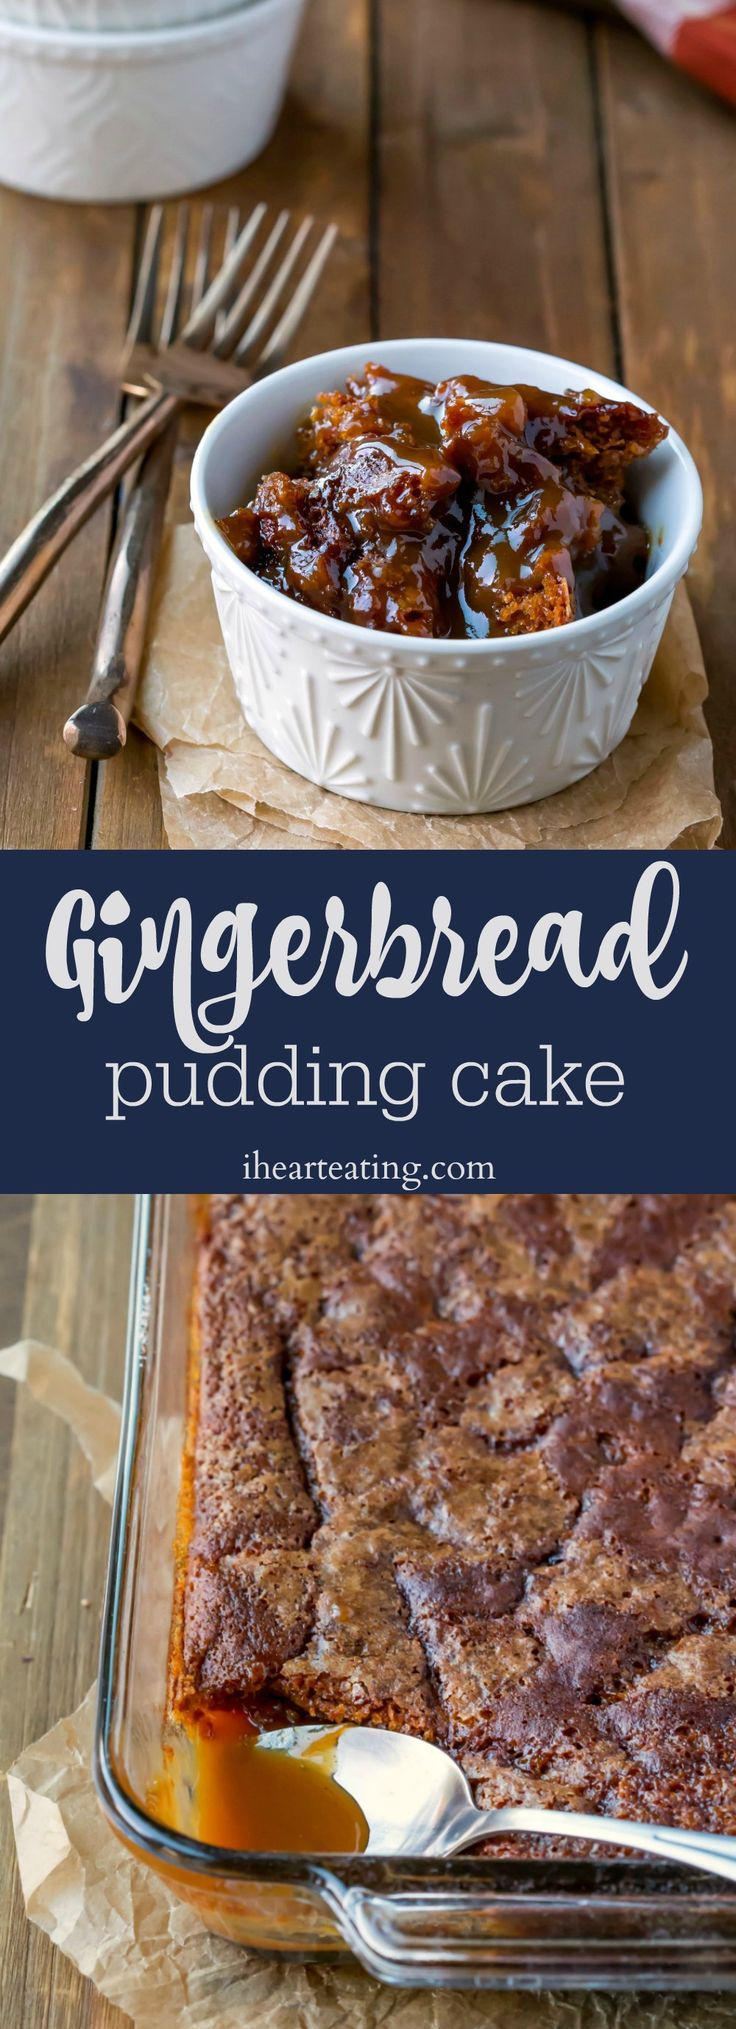 Gingerbread Pudding Cake is a moist apple gingerbread cake that makes its own caramel apple sauce while it bakes. Yummy Christmas dessert! #cakes #recipes #Christmas #gingerbread #desserts